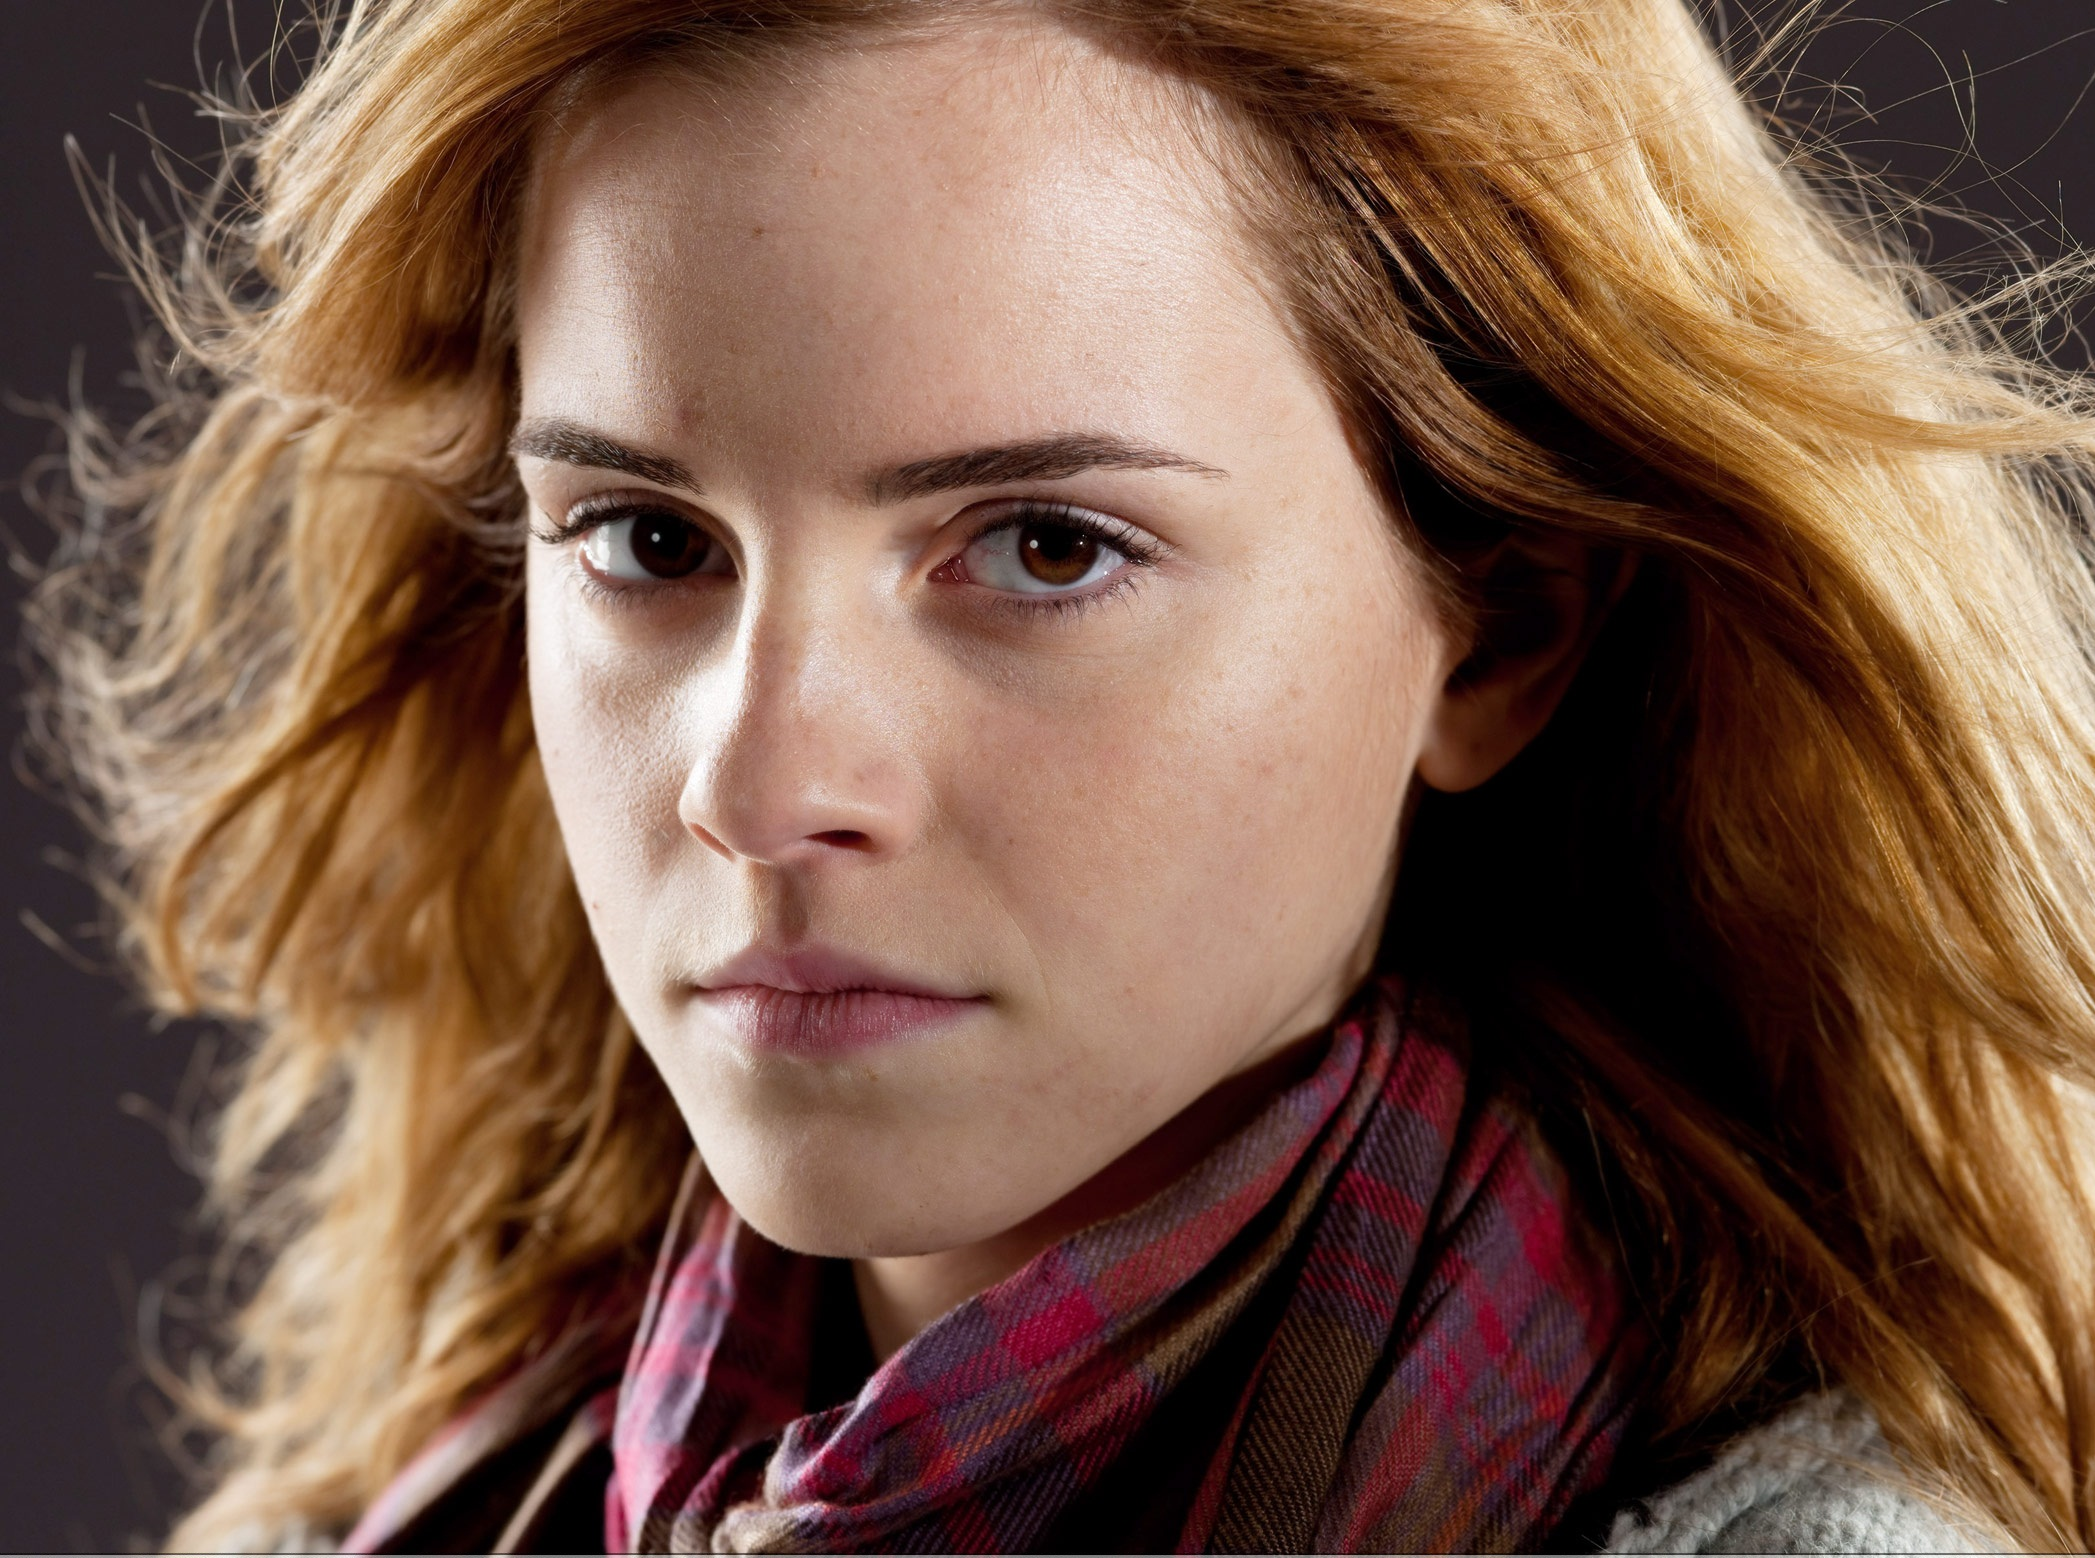 DH1 Hermione Granger headshot 01 I came to the Harry Potter universe kicking and screaming (as I do many ...